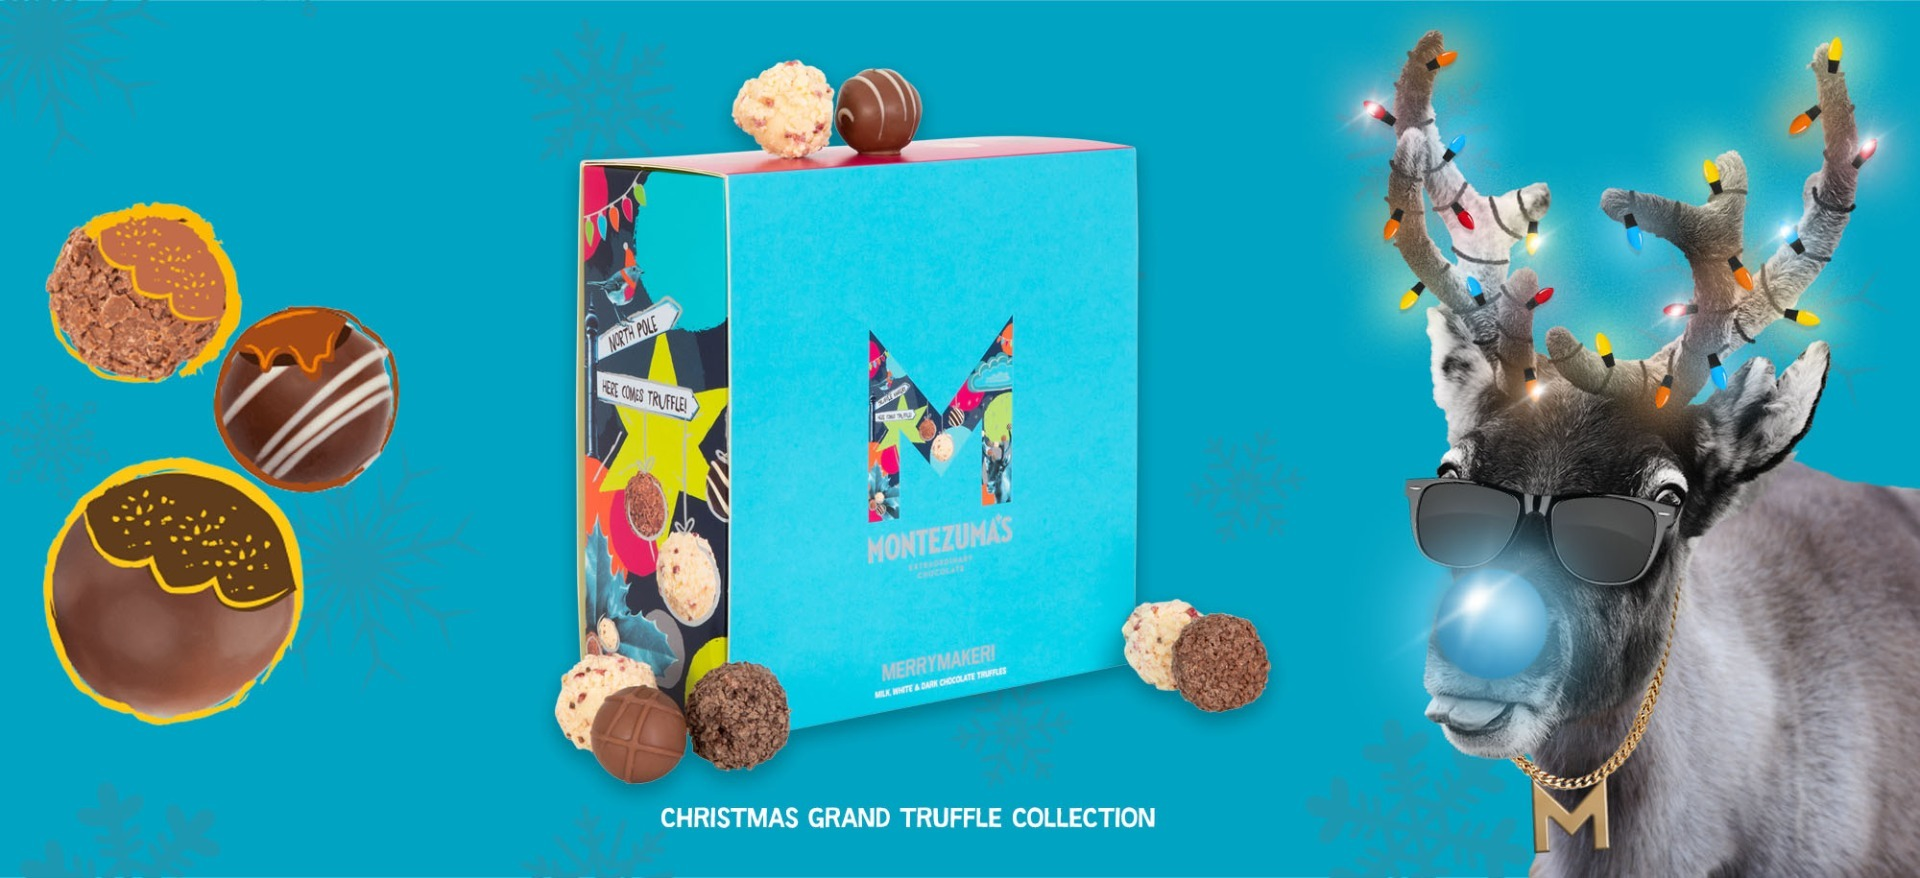 Christmas Truffles with a Reindeer